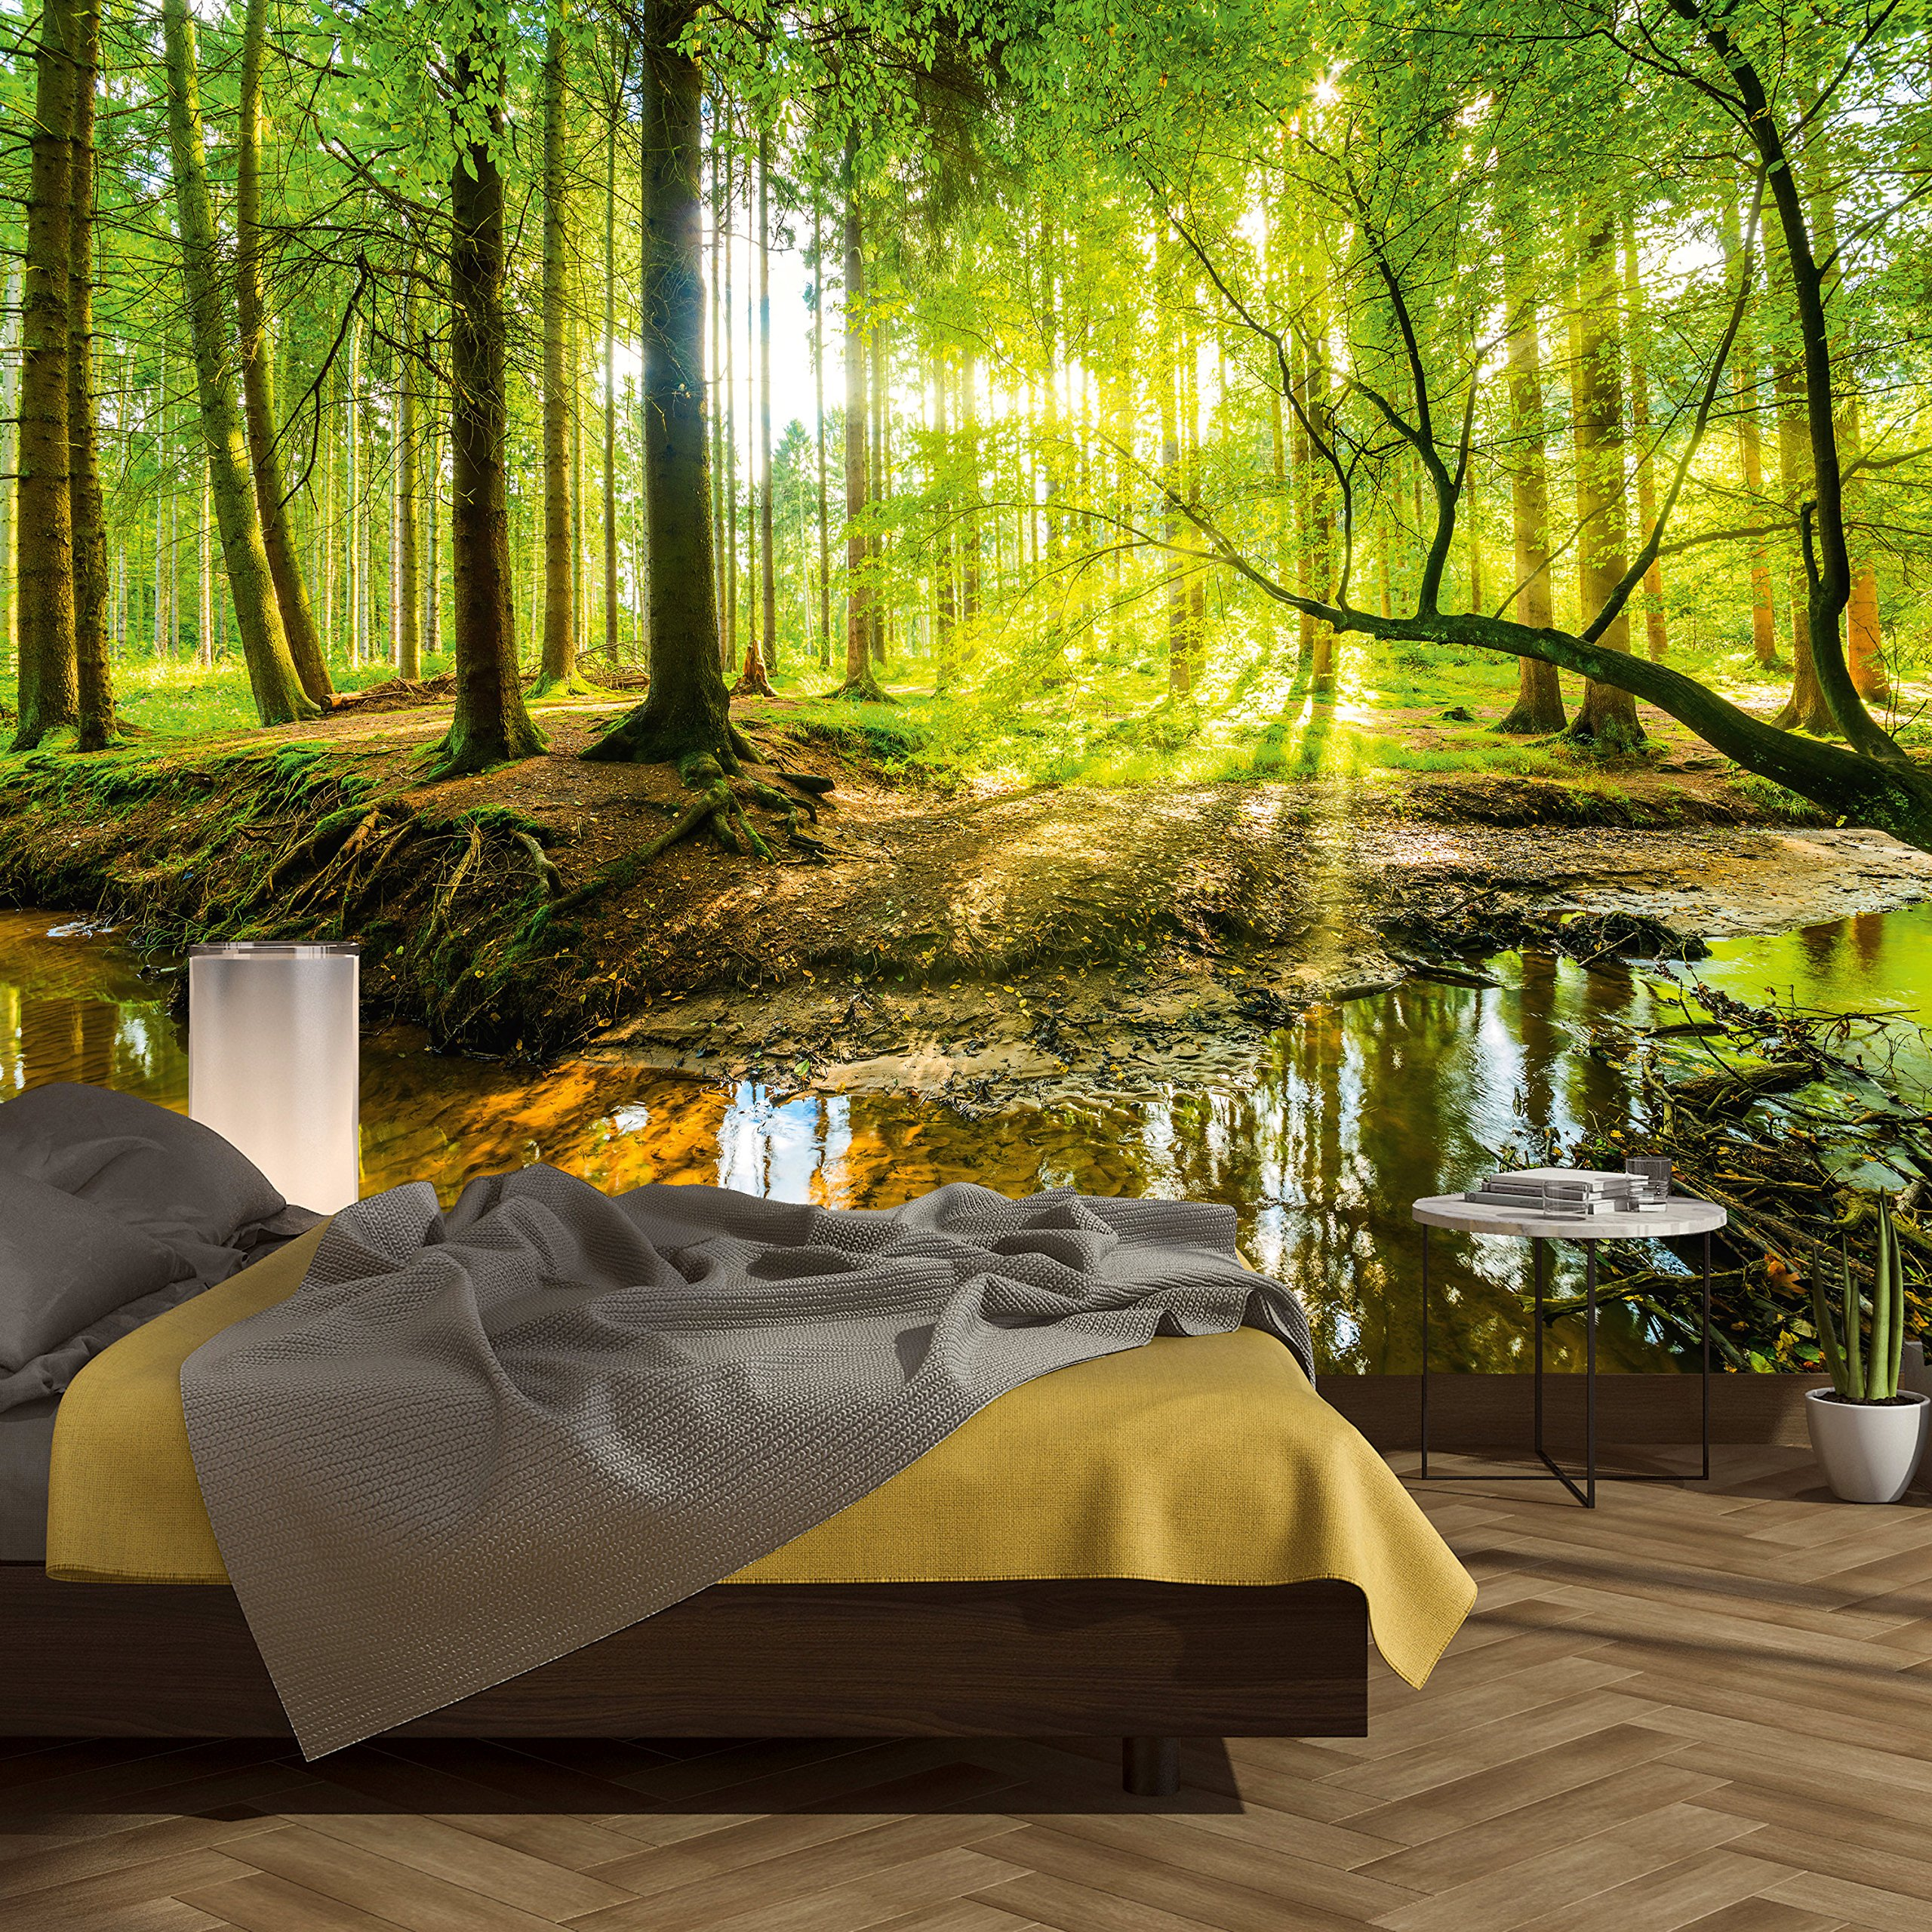 wall murals amazon co ukphoto wallpaper forest 366 x 254cm wood trees sunlight wall murals included glue